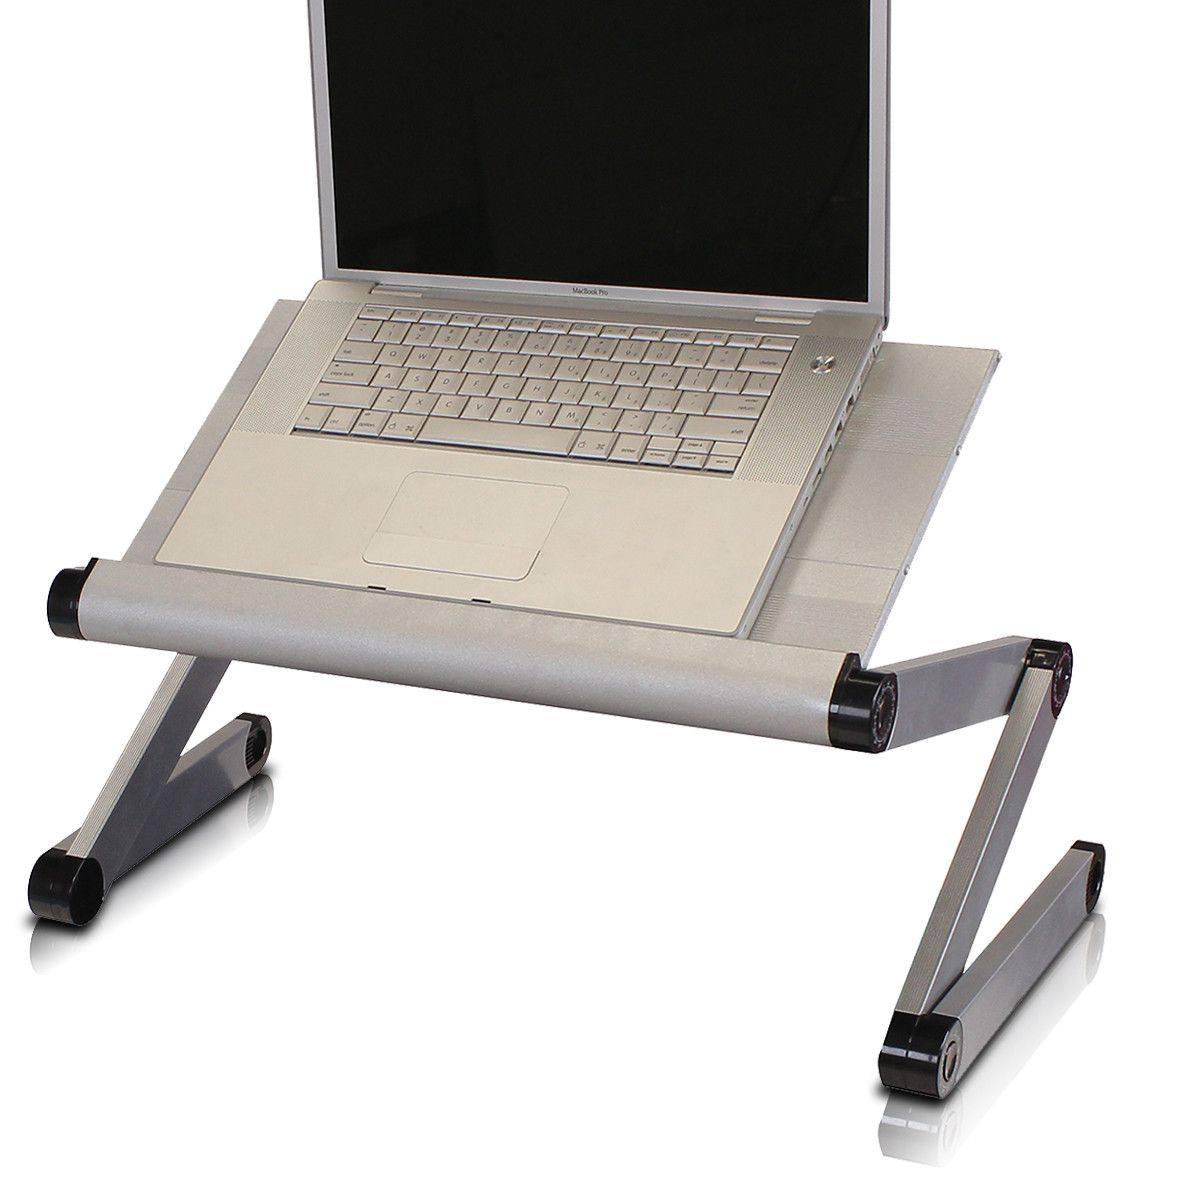 Furinno Premium Portable Folding Lapdesk & Reviews | Wayfair